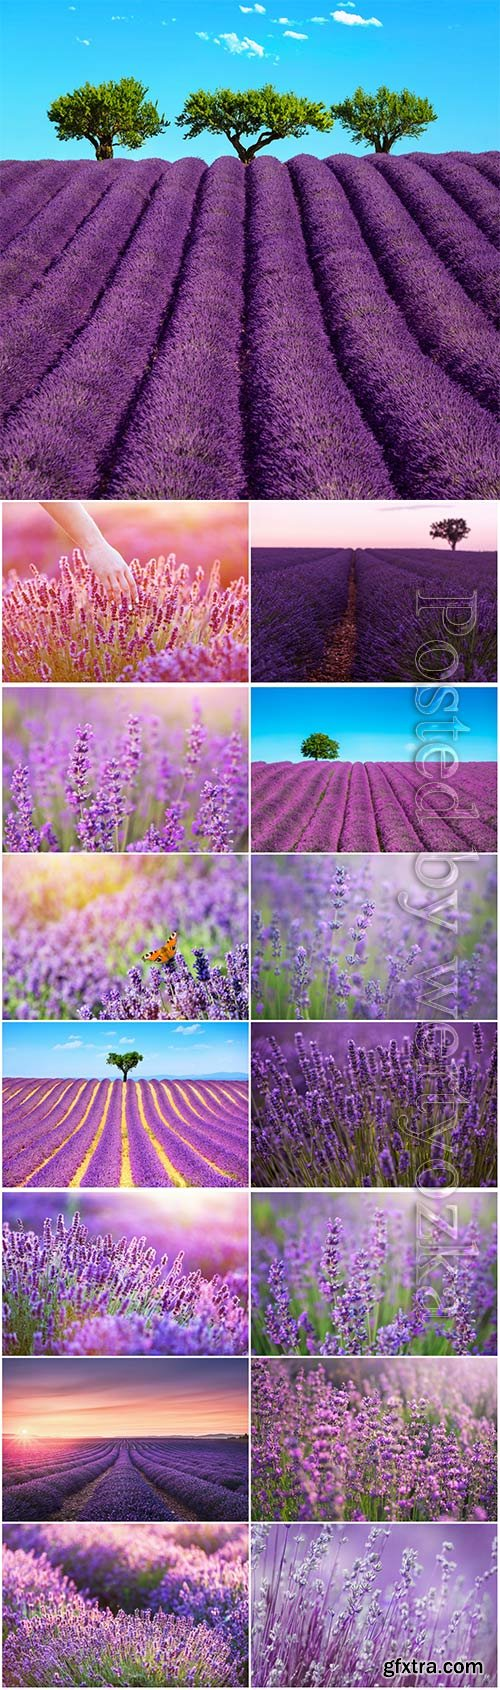 Fragrant lavender beautiful stock photo